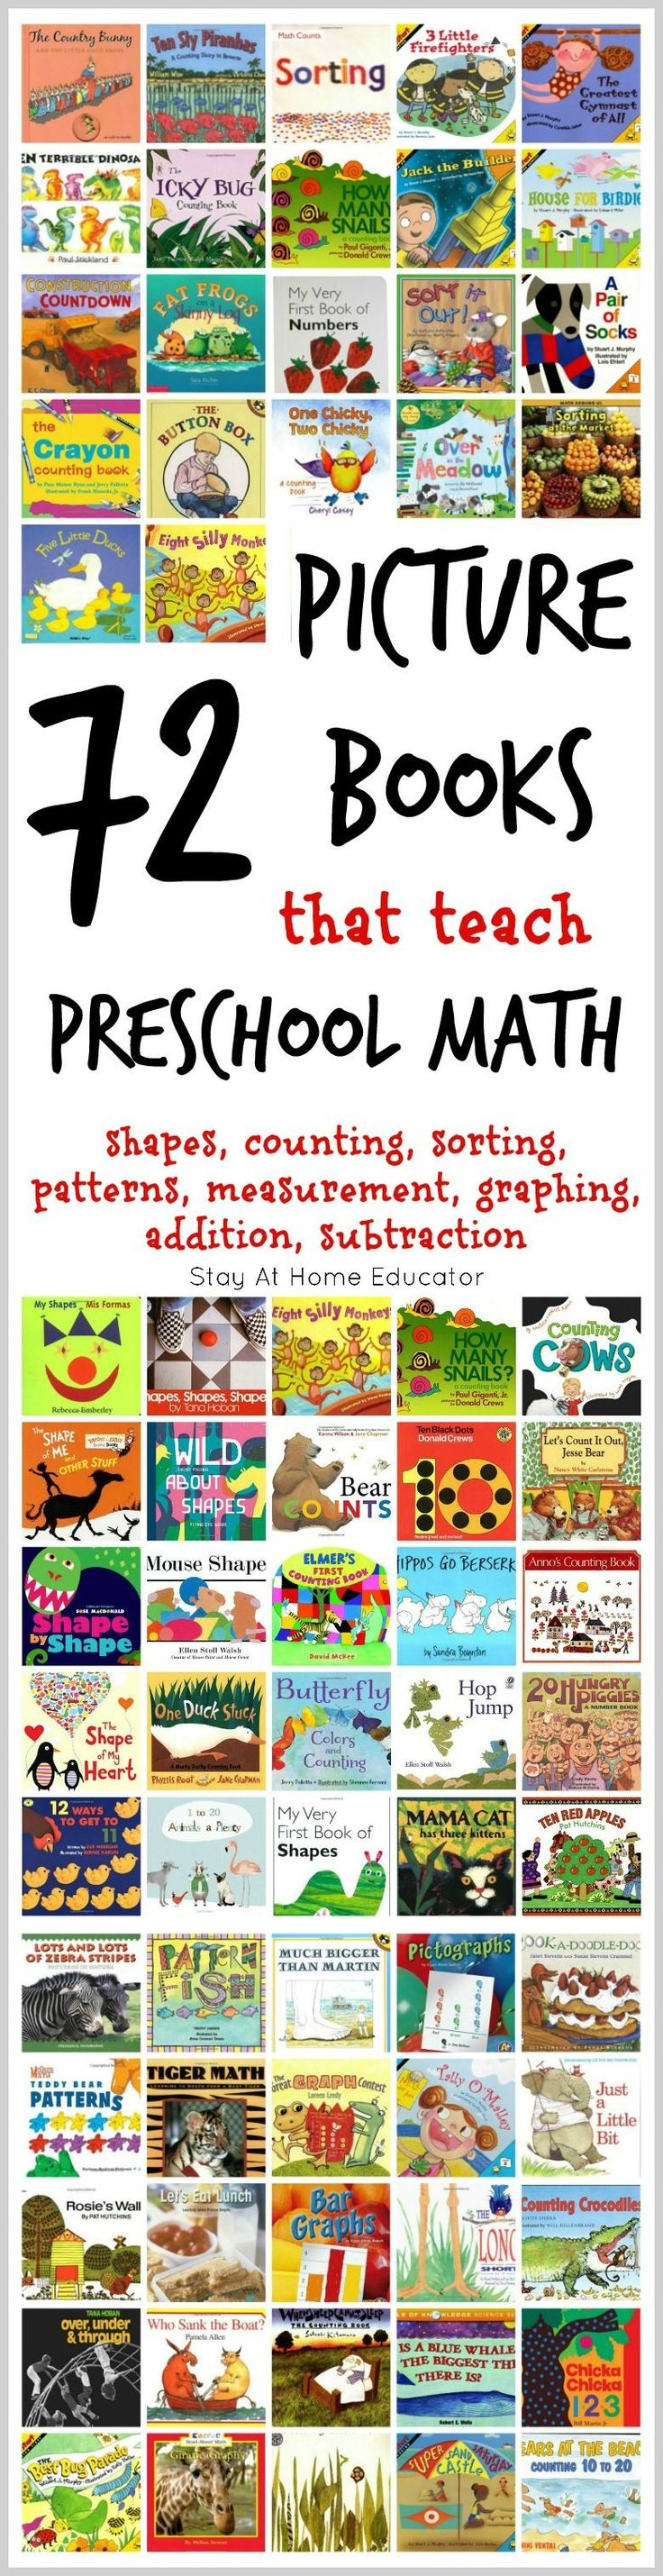 Worksheet Math Concepts For Preschool 1000 ideas about preschool math on pinterest number strengthen your instruction by supporting concept with good literature these picture books for kids make inter